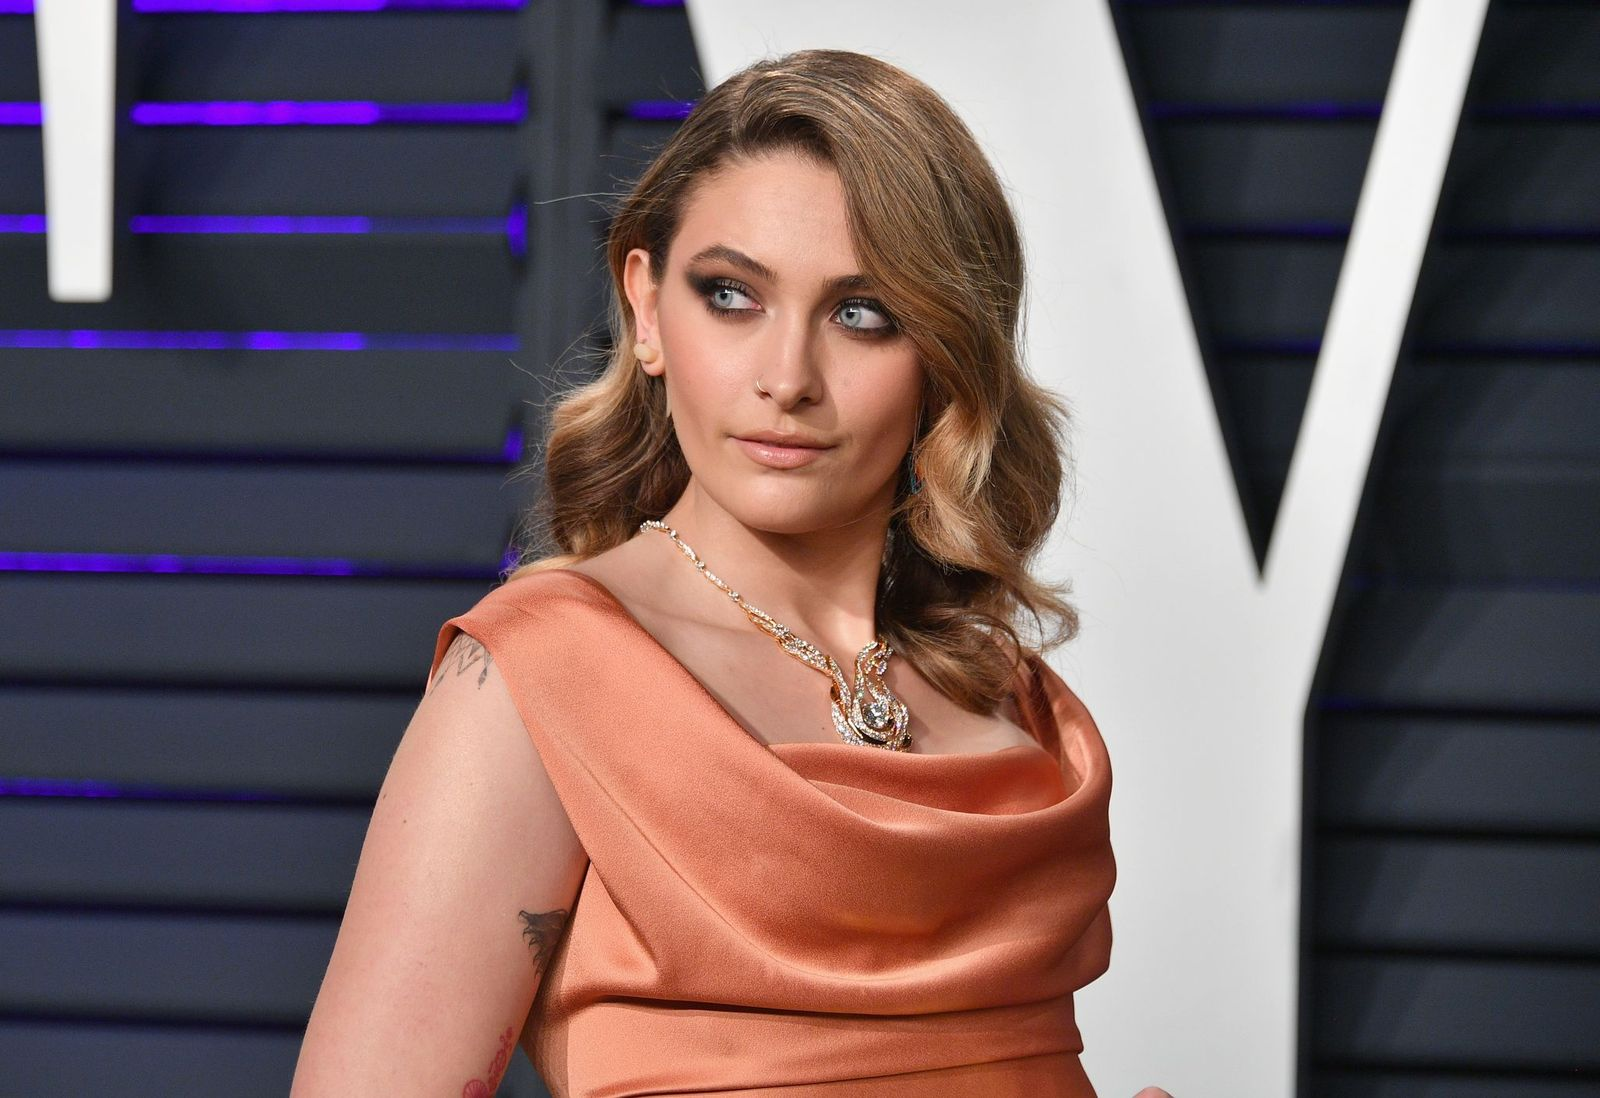 Paris Jackson at the 2019 Vanity Fair Oscar Party hosted by Radhika Jones at Wallis Annenberg Center on February 24, 2019 | Photo: Getty Images